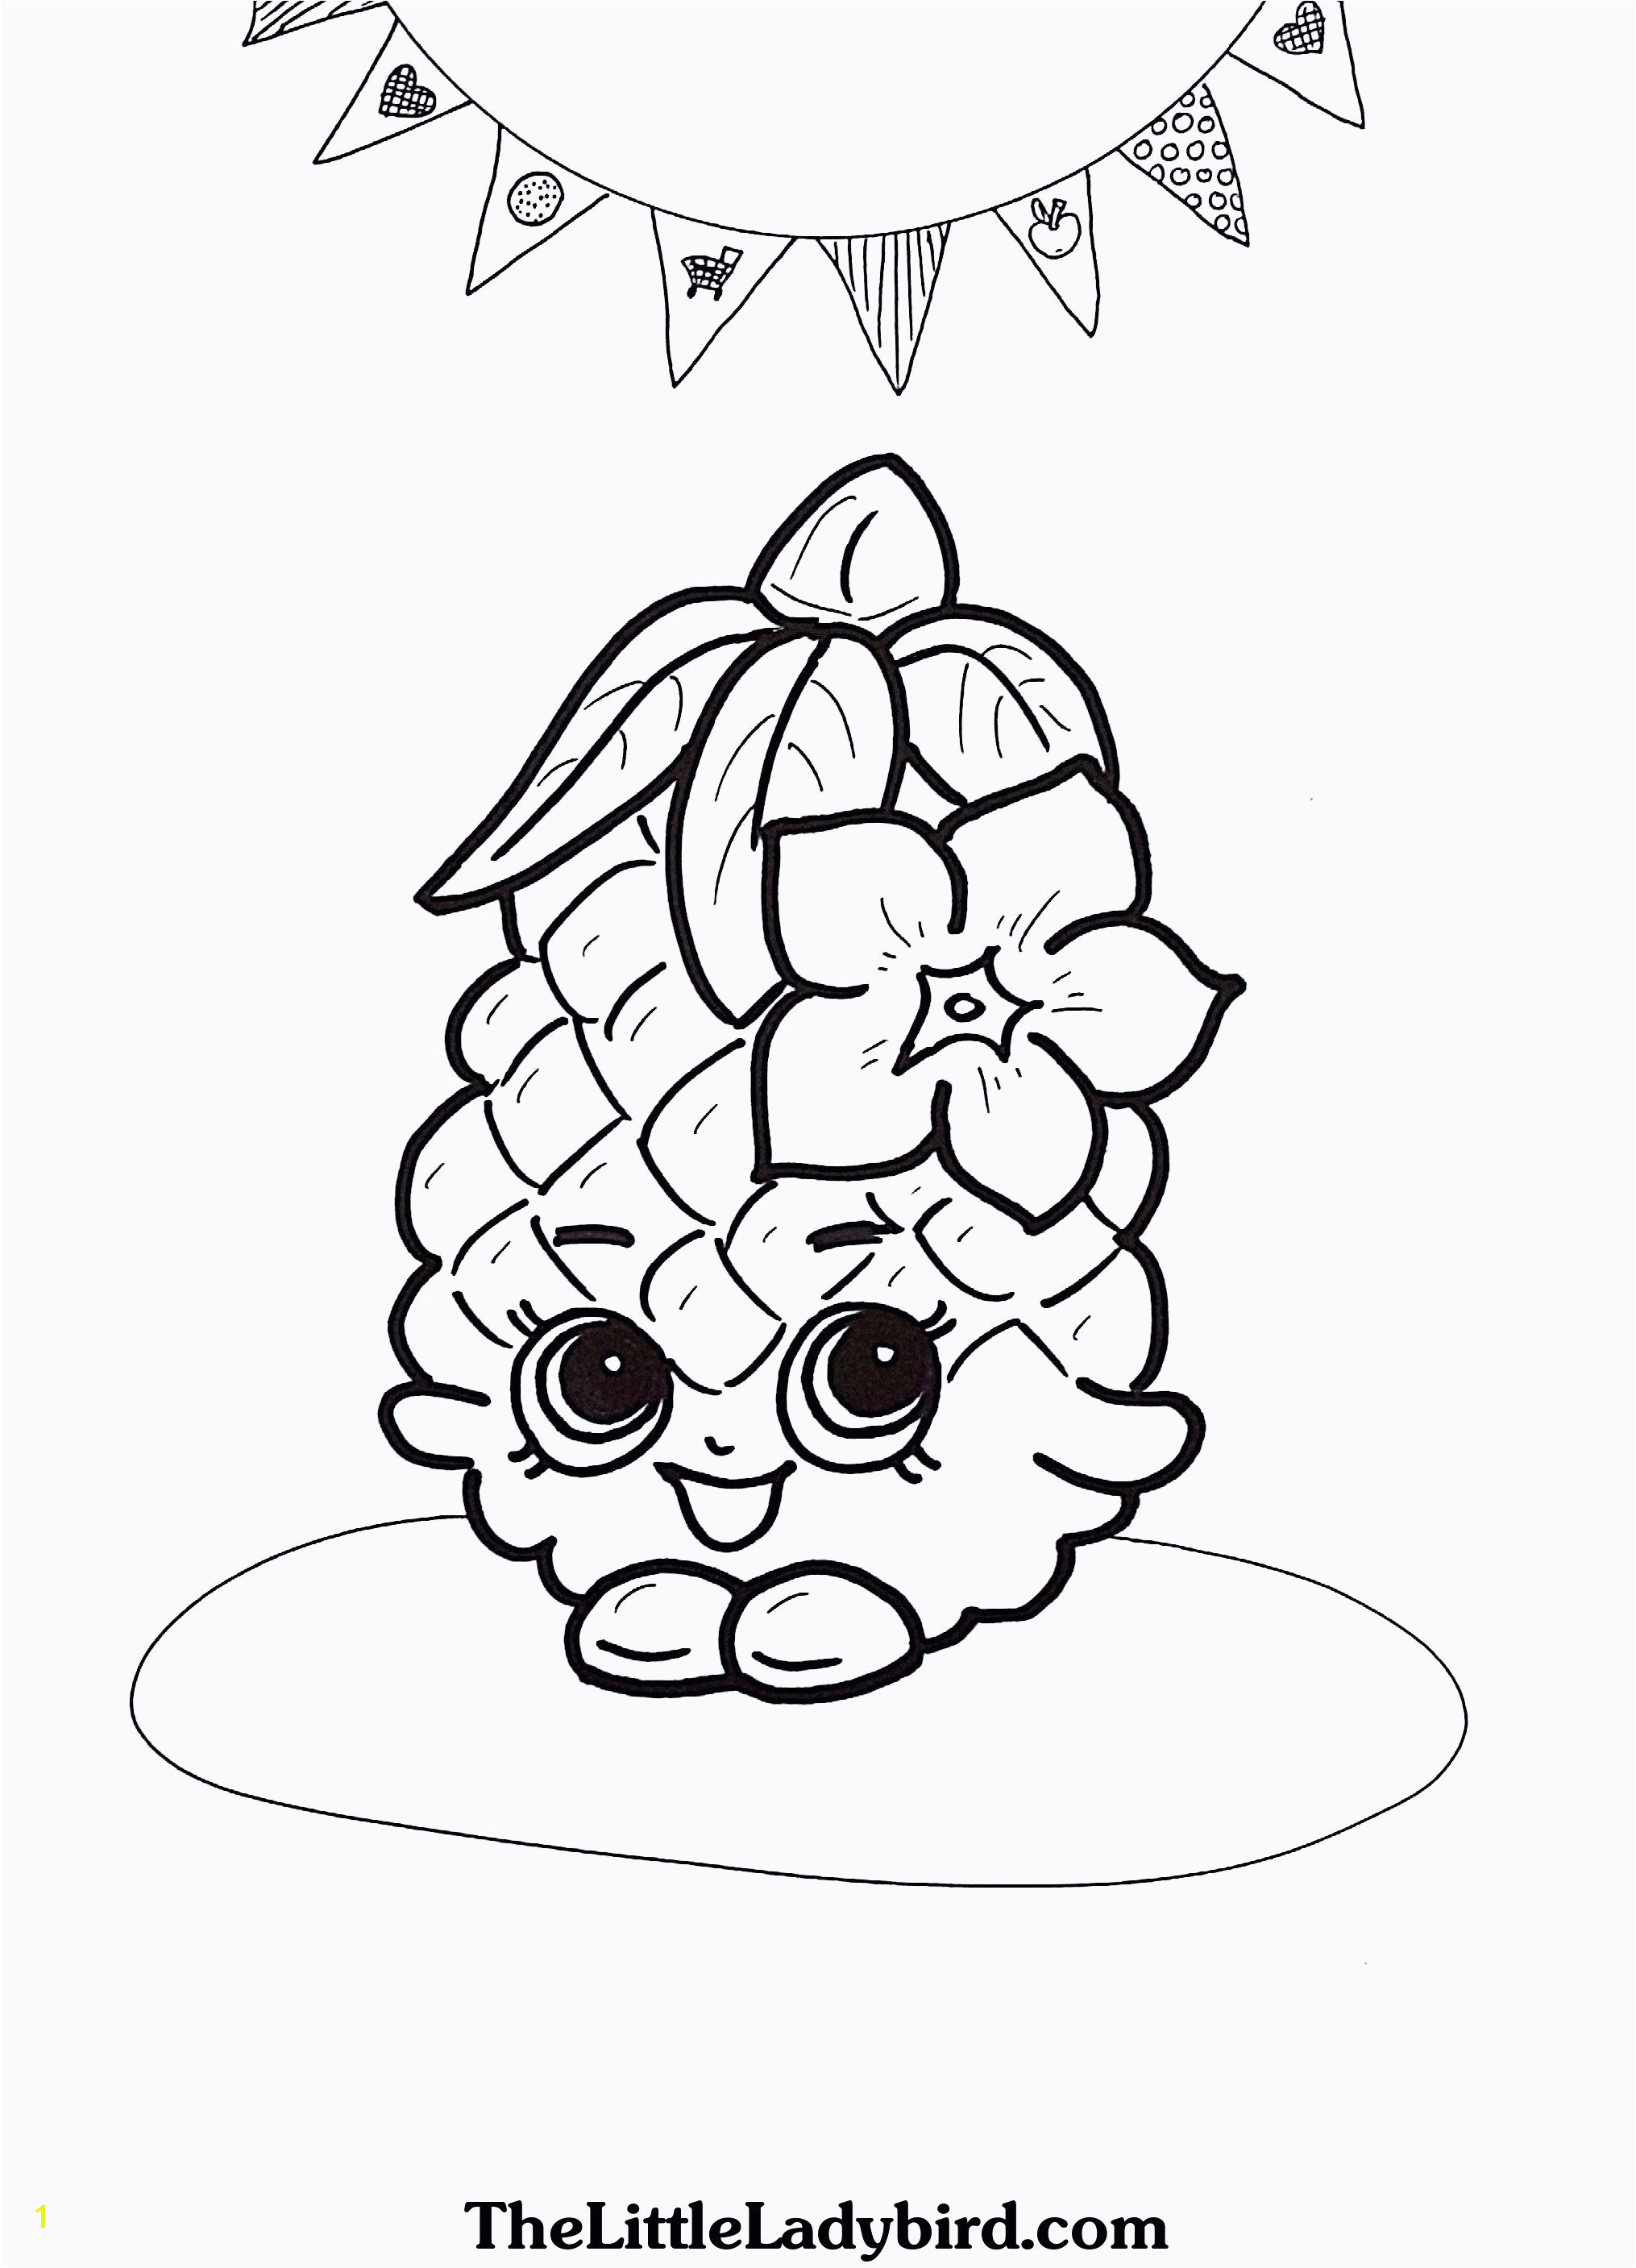 Preschool Christmas ornament Coloring Pages Crayola Coloring Pages for Kids Summer Coloring Sheets Luxury